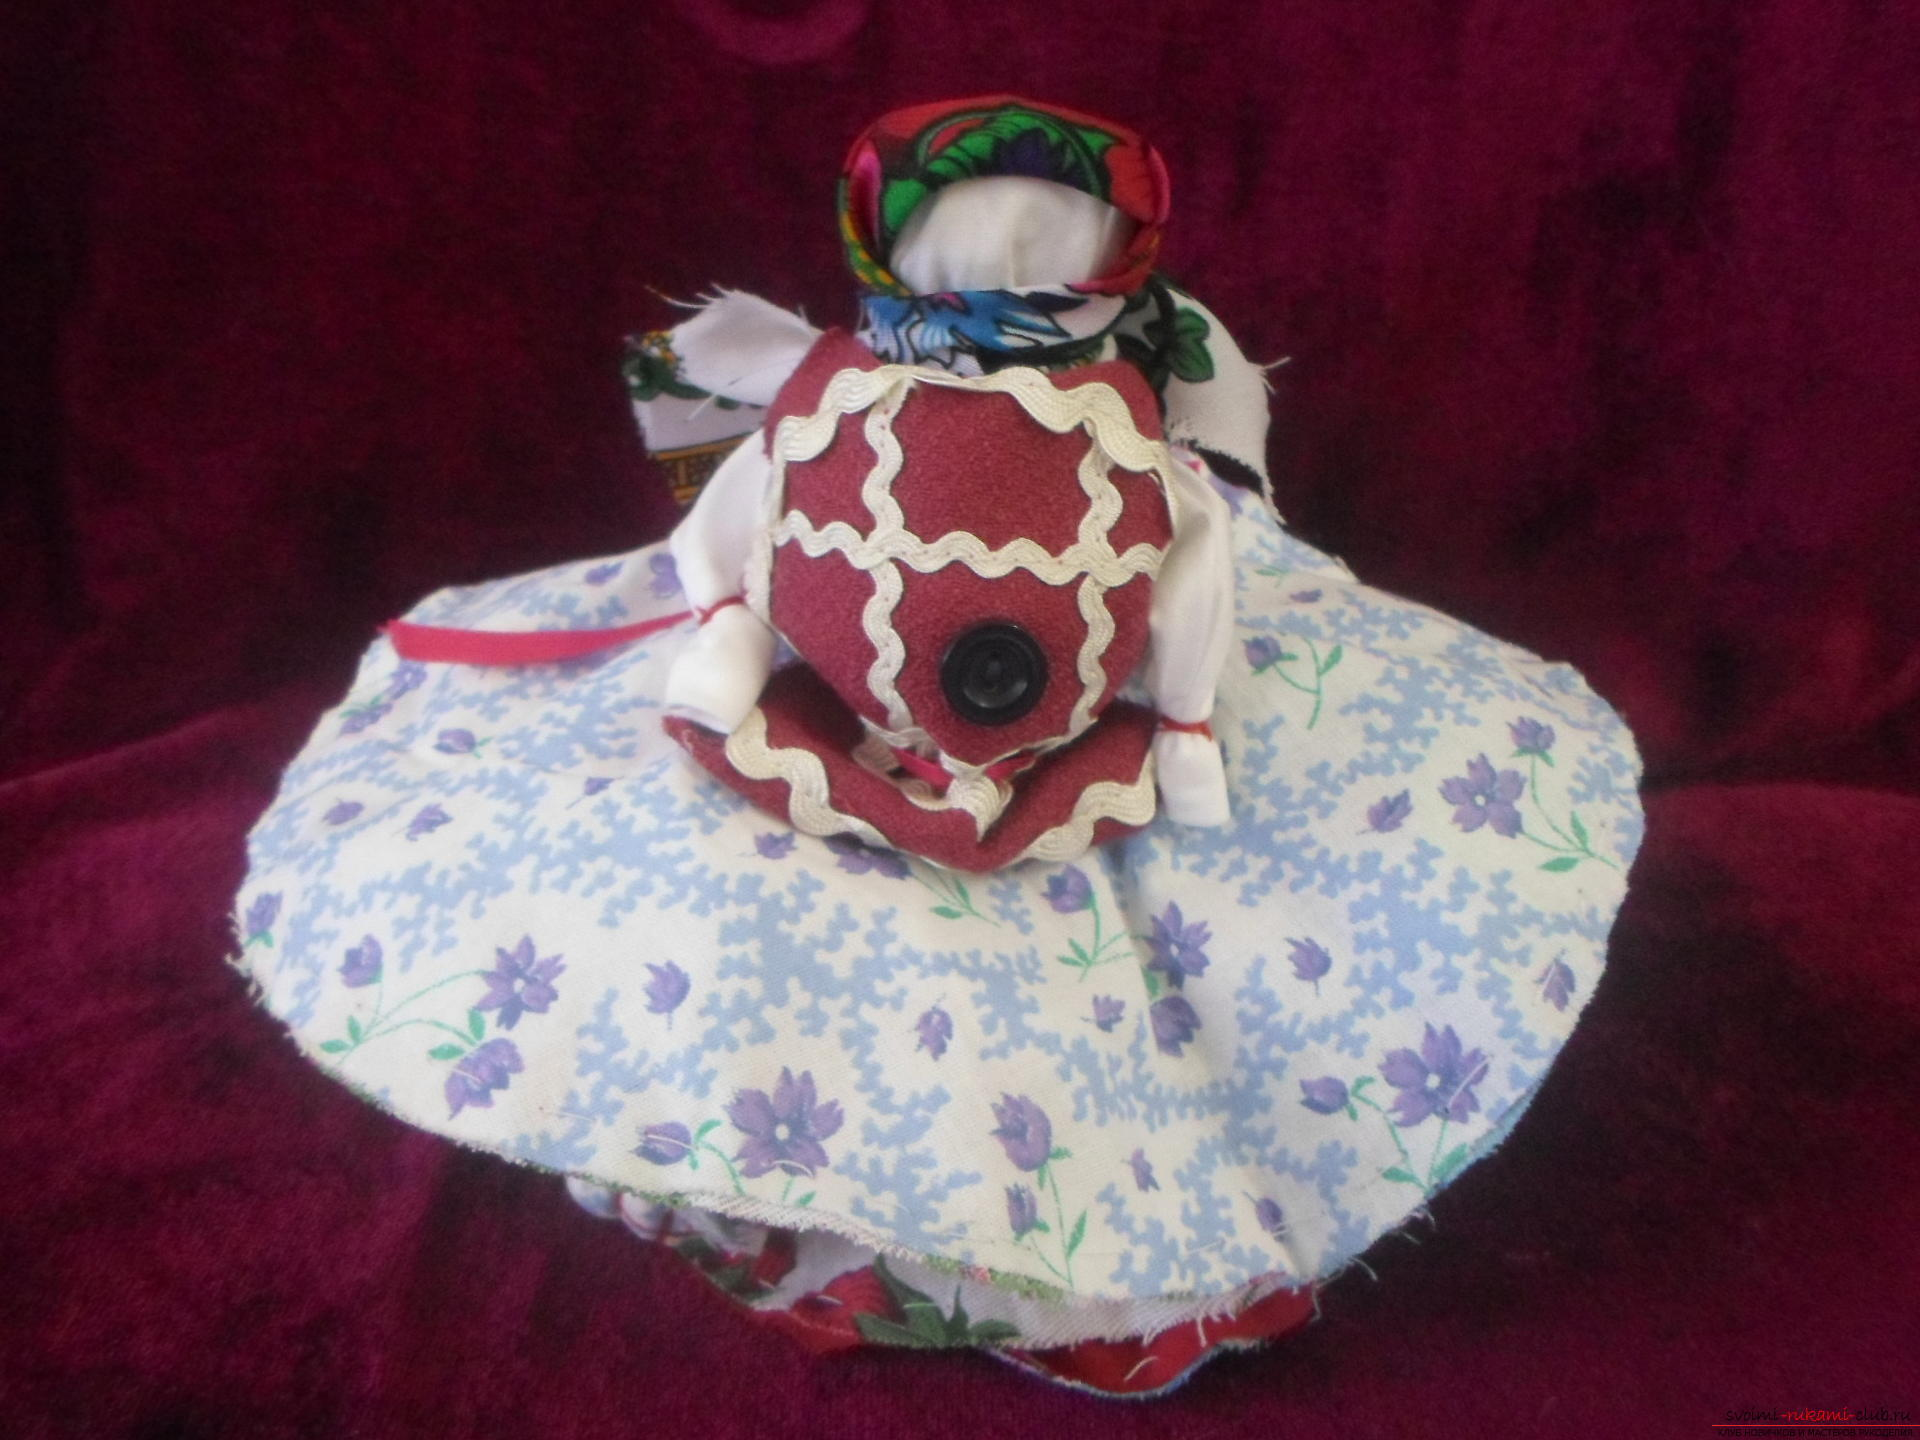 Slavic dolls, amulets for children's games and interior decorations in the Old Russian style. Photo №7